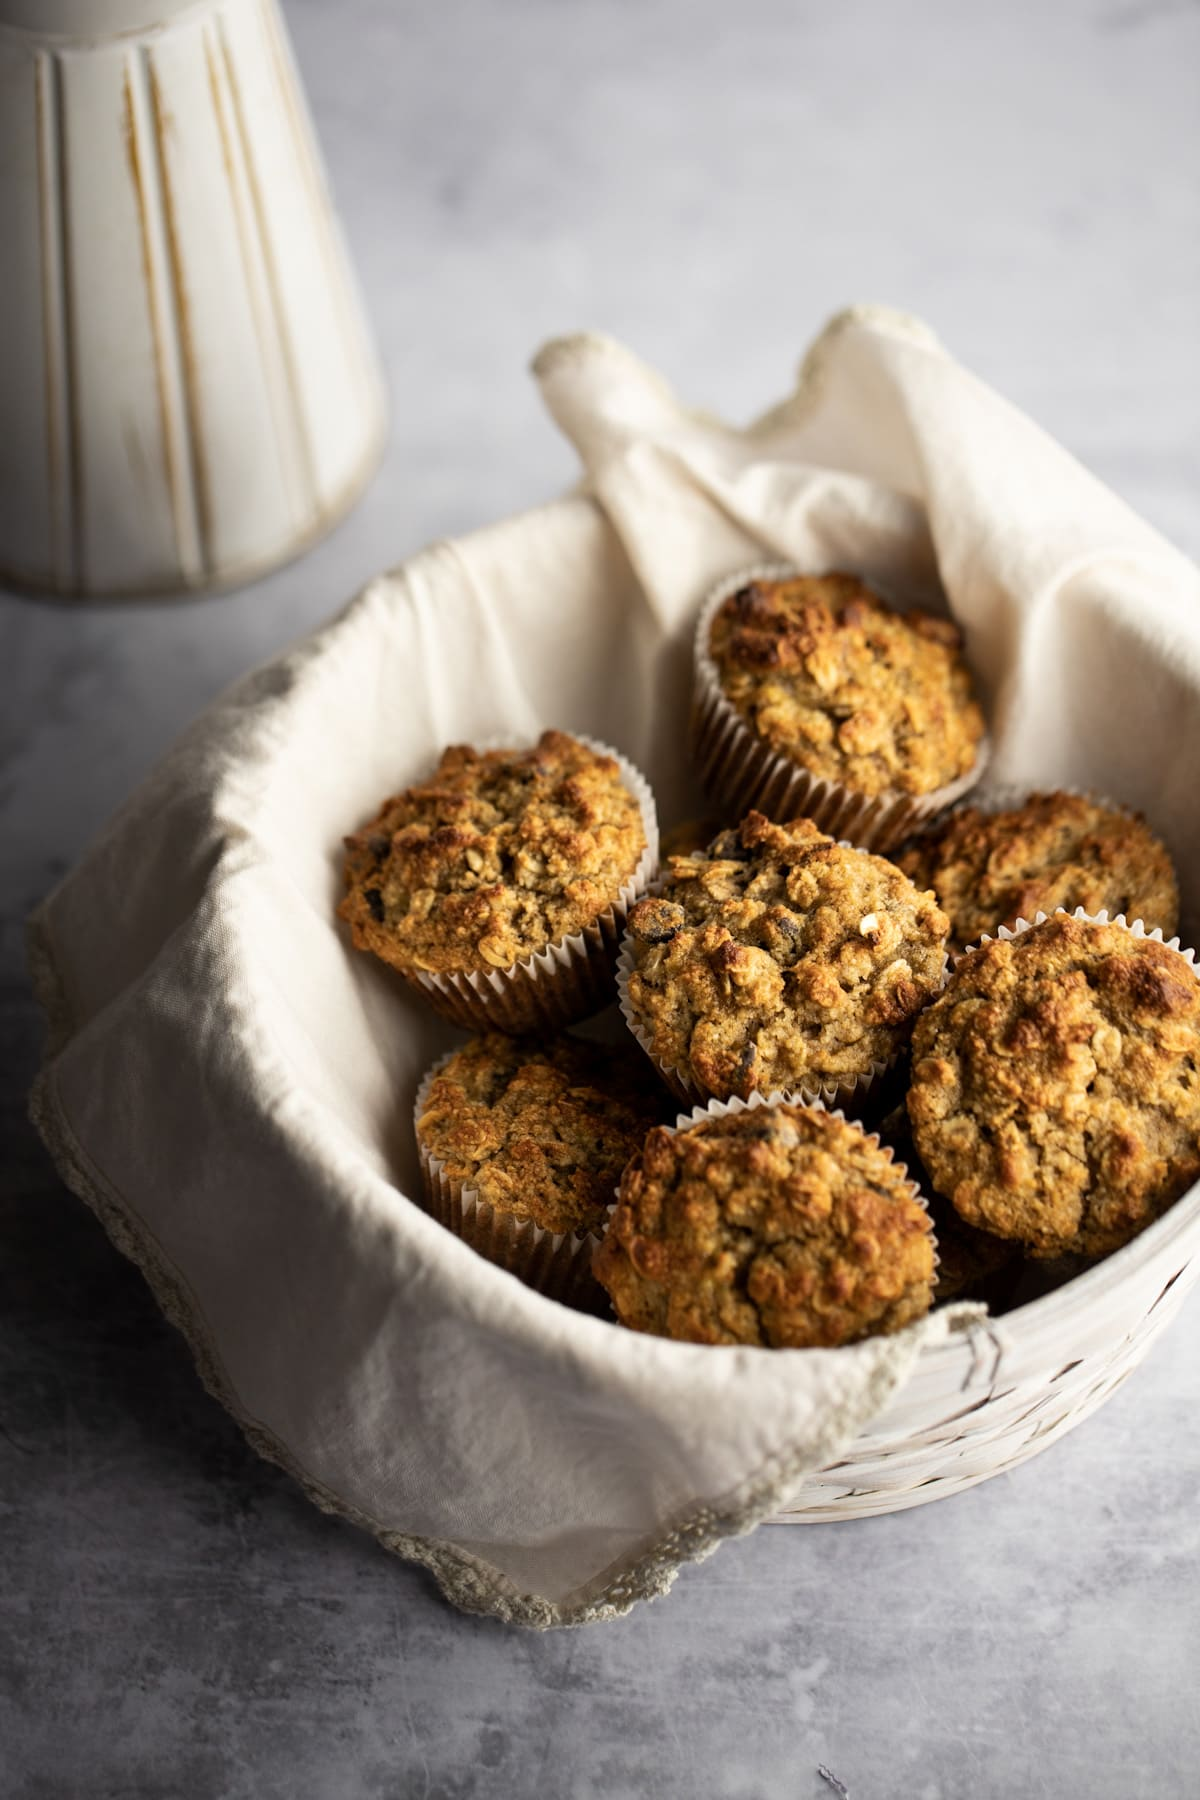 A white basket with a beige napkin filled with muffins, on a grey table.